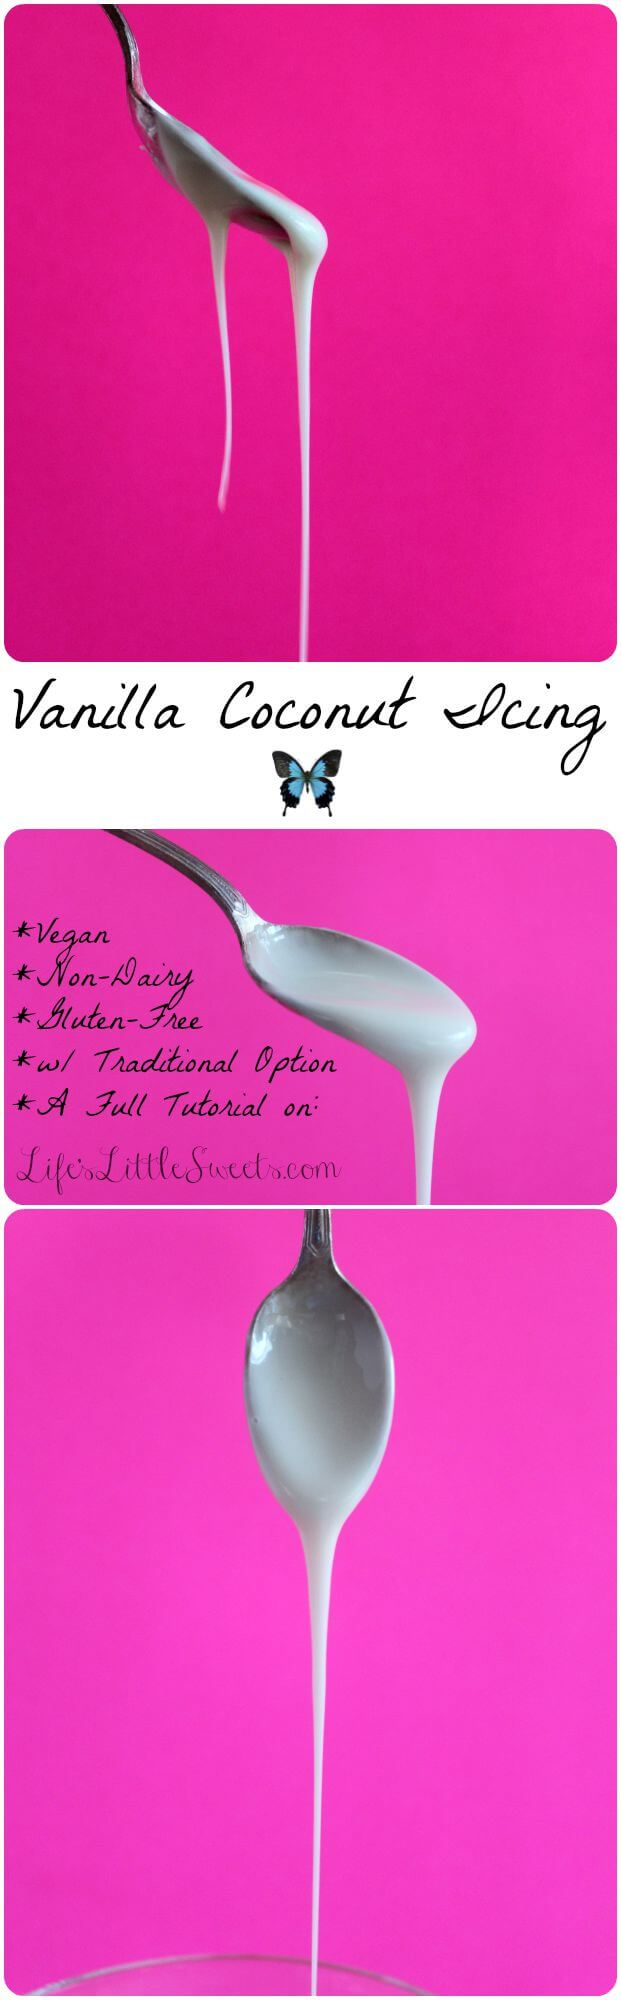 Vanilla Coconut Icing is a vegan and gluten-free icing that can be enjoyed on muffins, scones, quick breads, cakes or any number of dessert recipes.